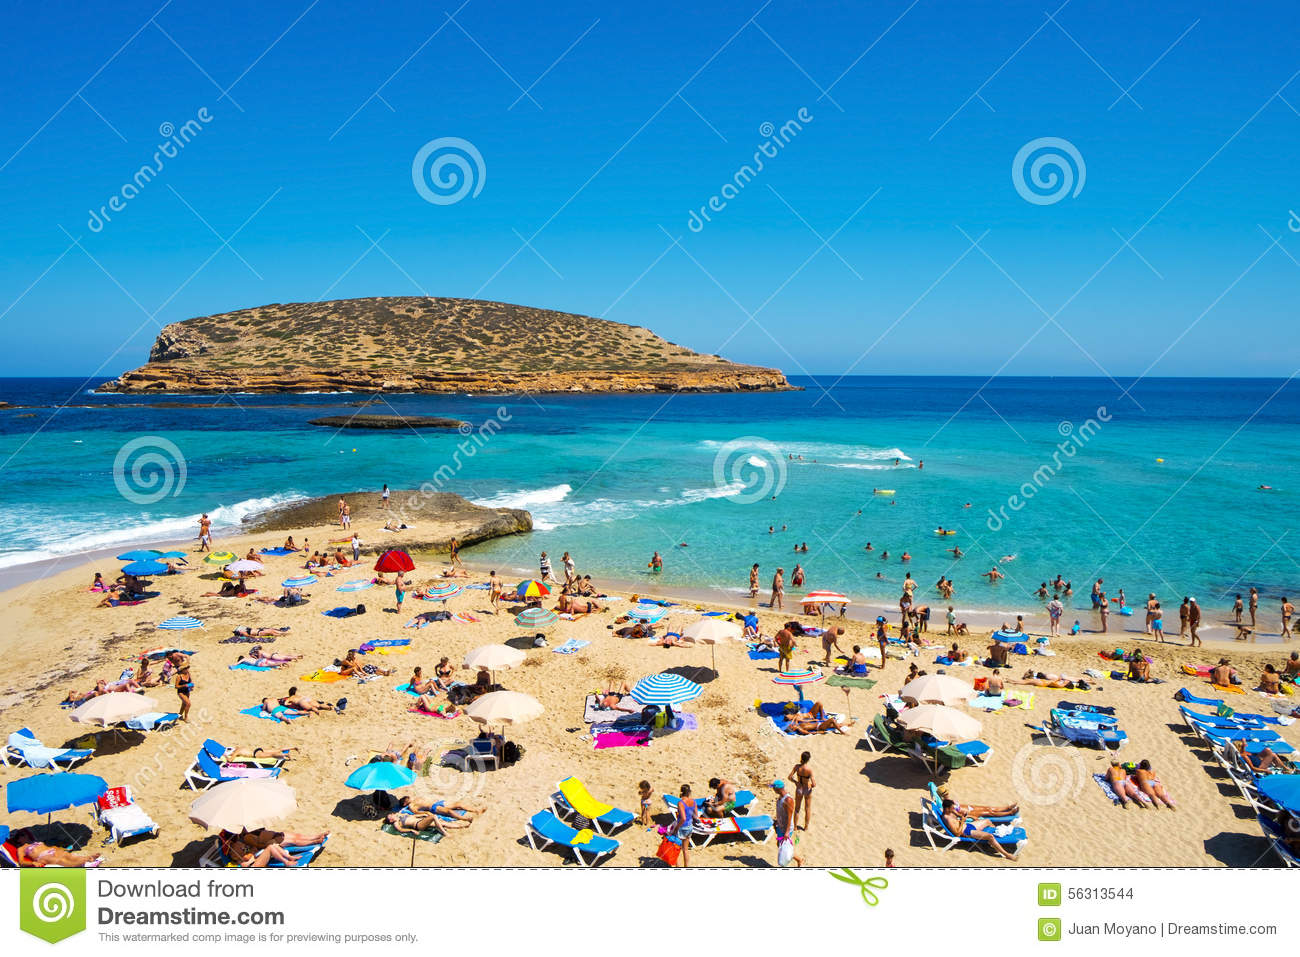 sunbathers in cala conta setzen in san antonio ibiza insel badekurort auf den strand. Black Bedroom Furniture Sets. Home Design Ideas